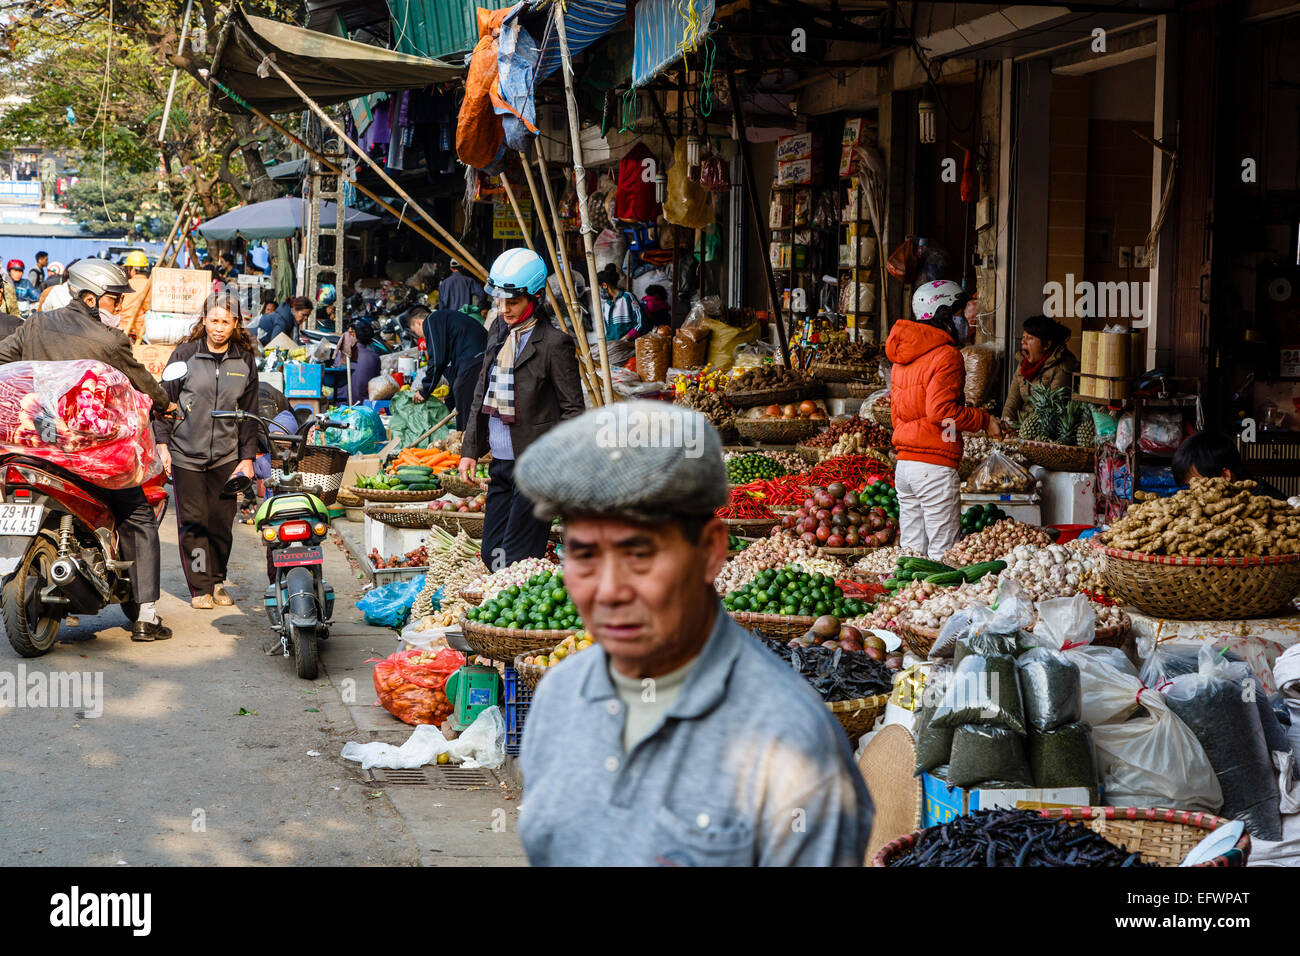 Market in the old quarter, Hanoi, Vietnam. Stock Photo